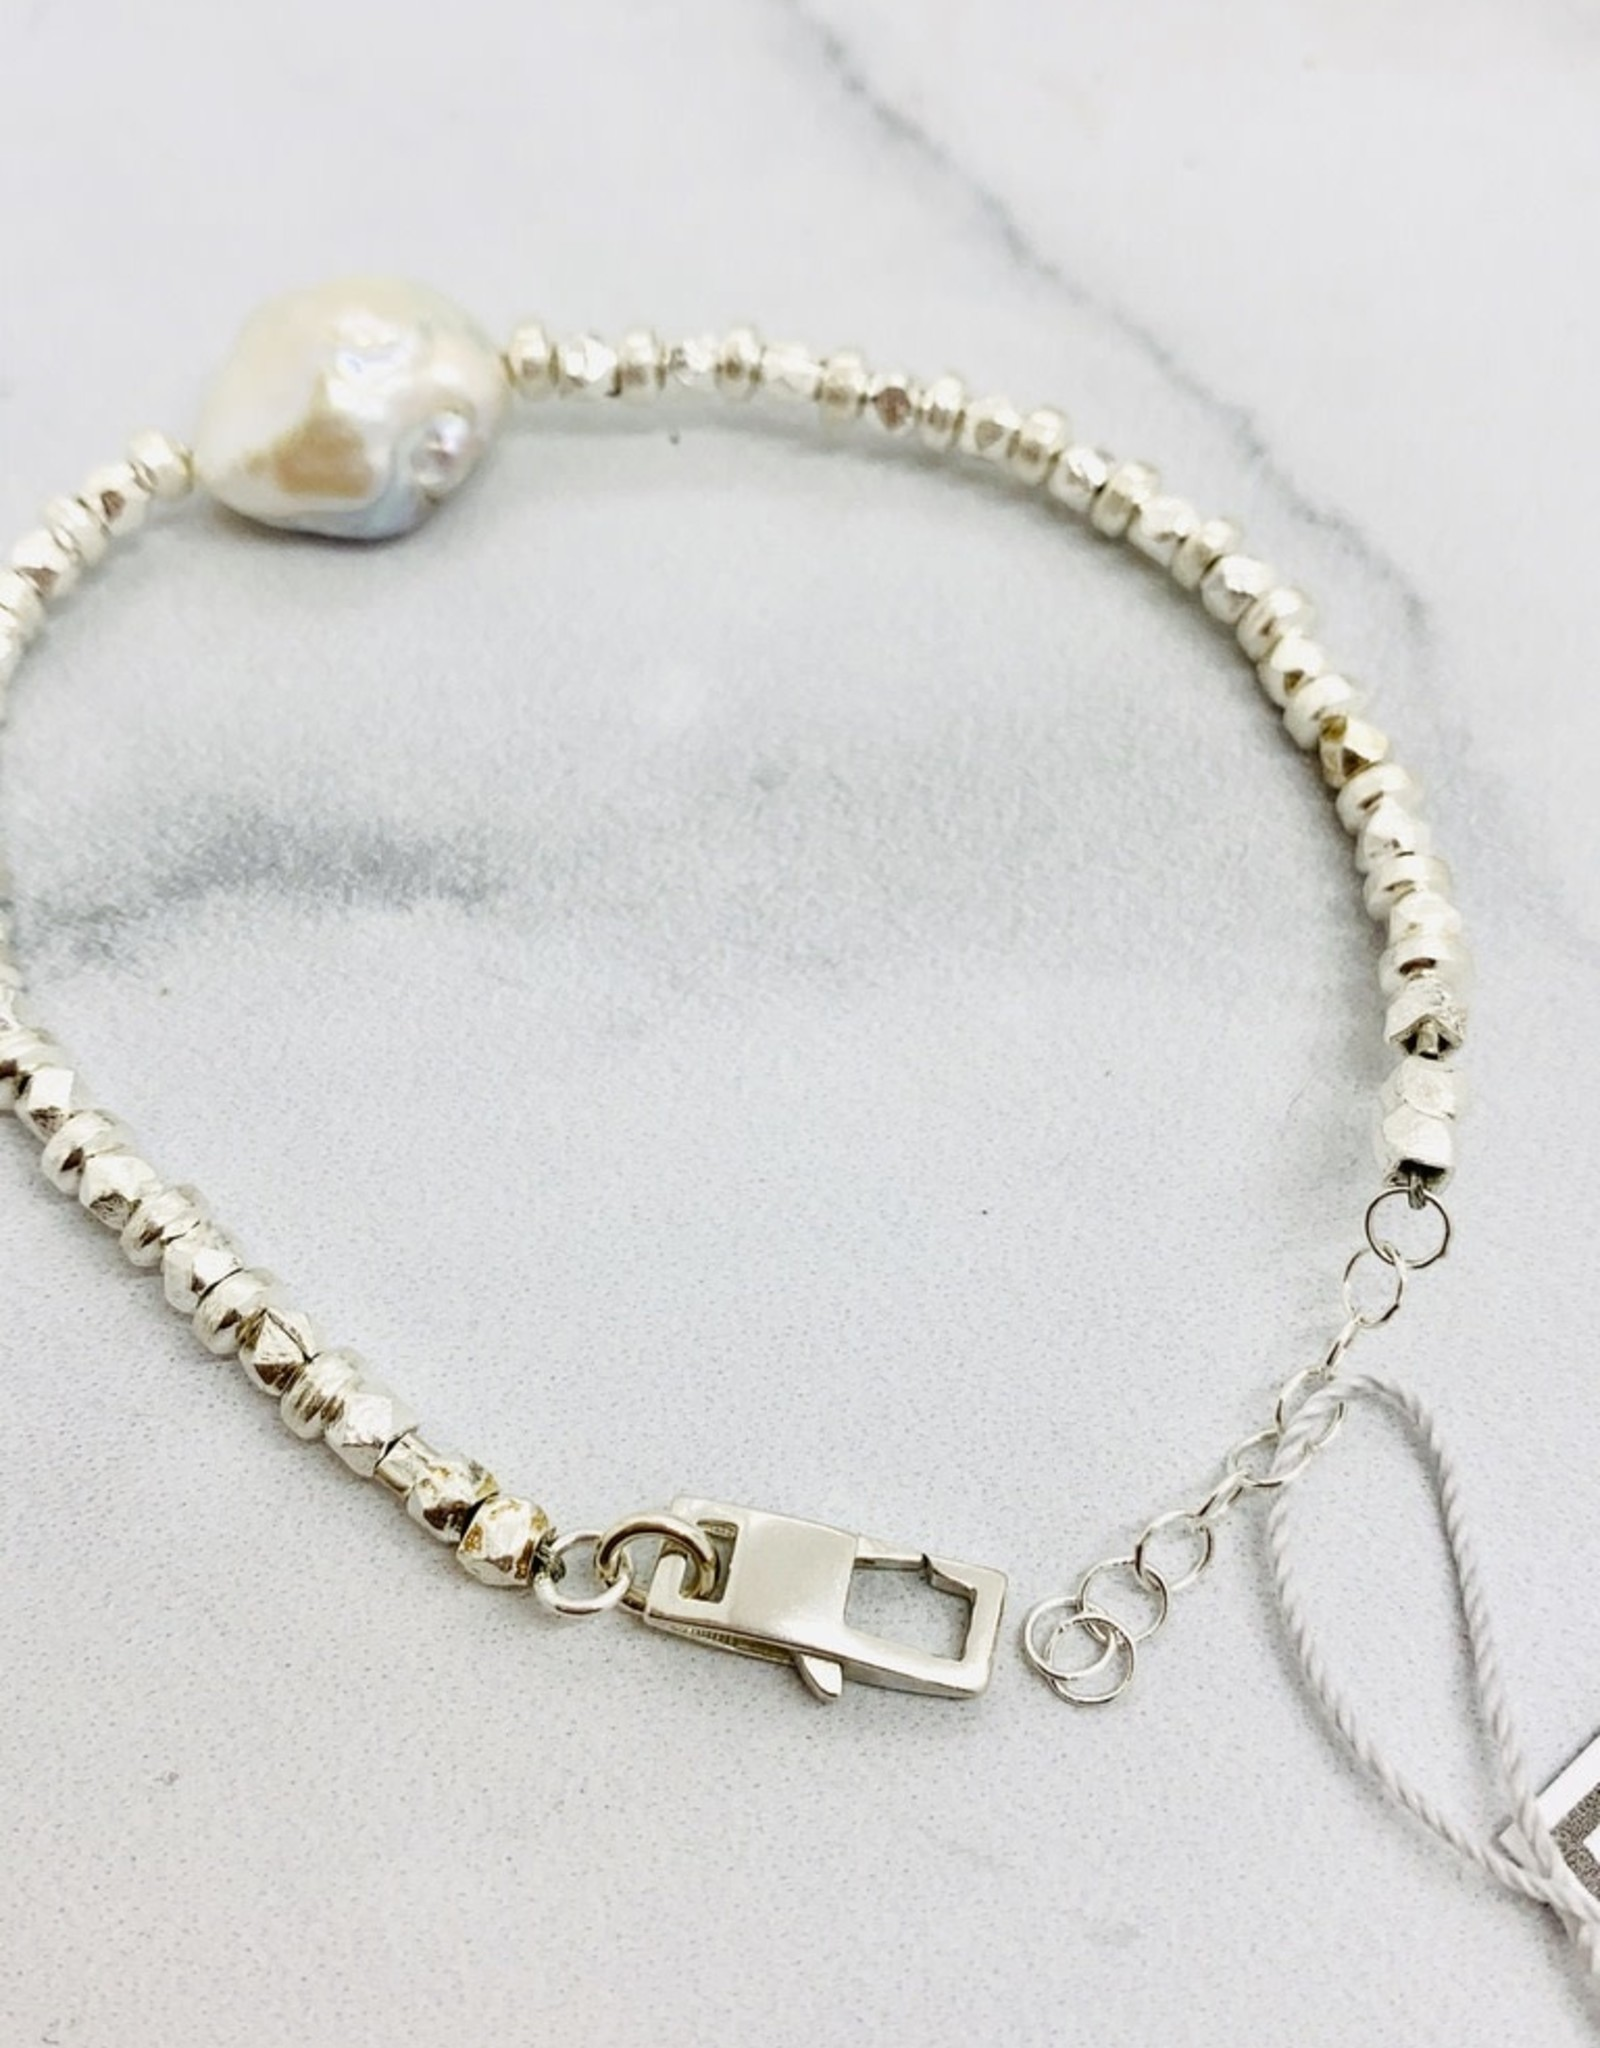 Handmade Bracelet, faceted silver/saucers, 1 baroque pearl